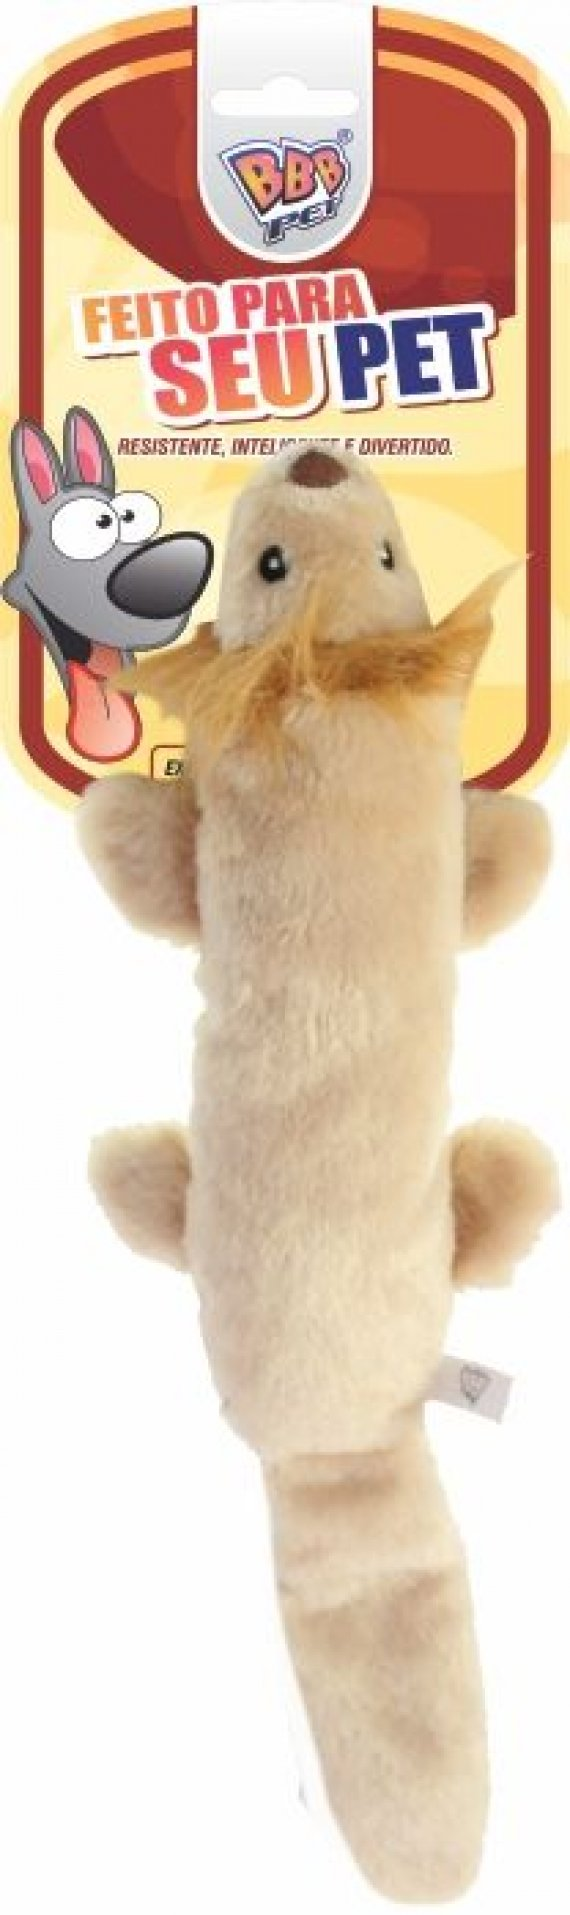 LEAO PLUSH PET SMALL